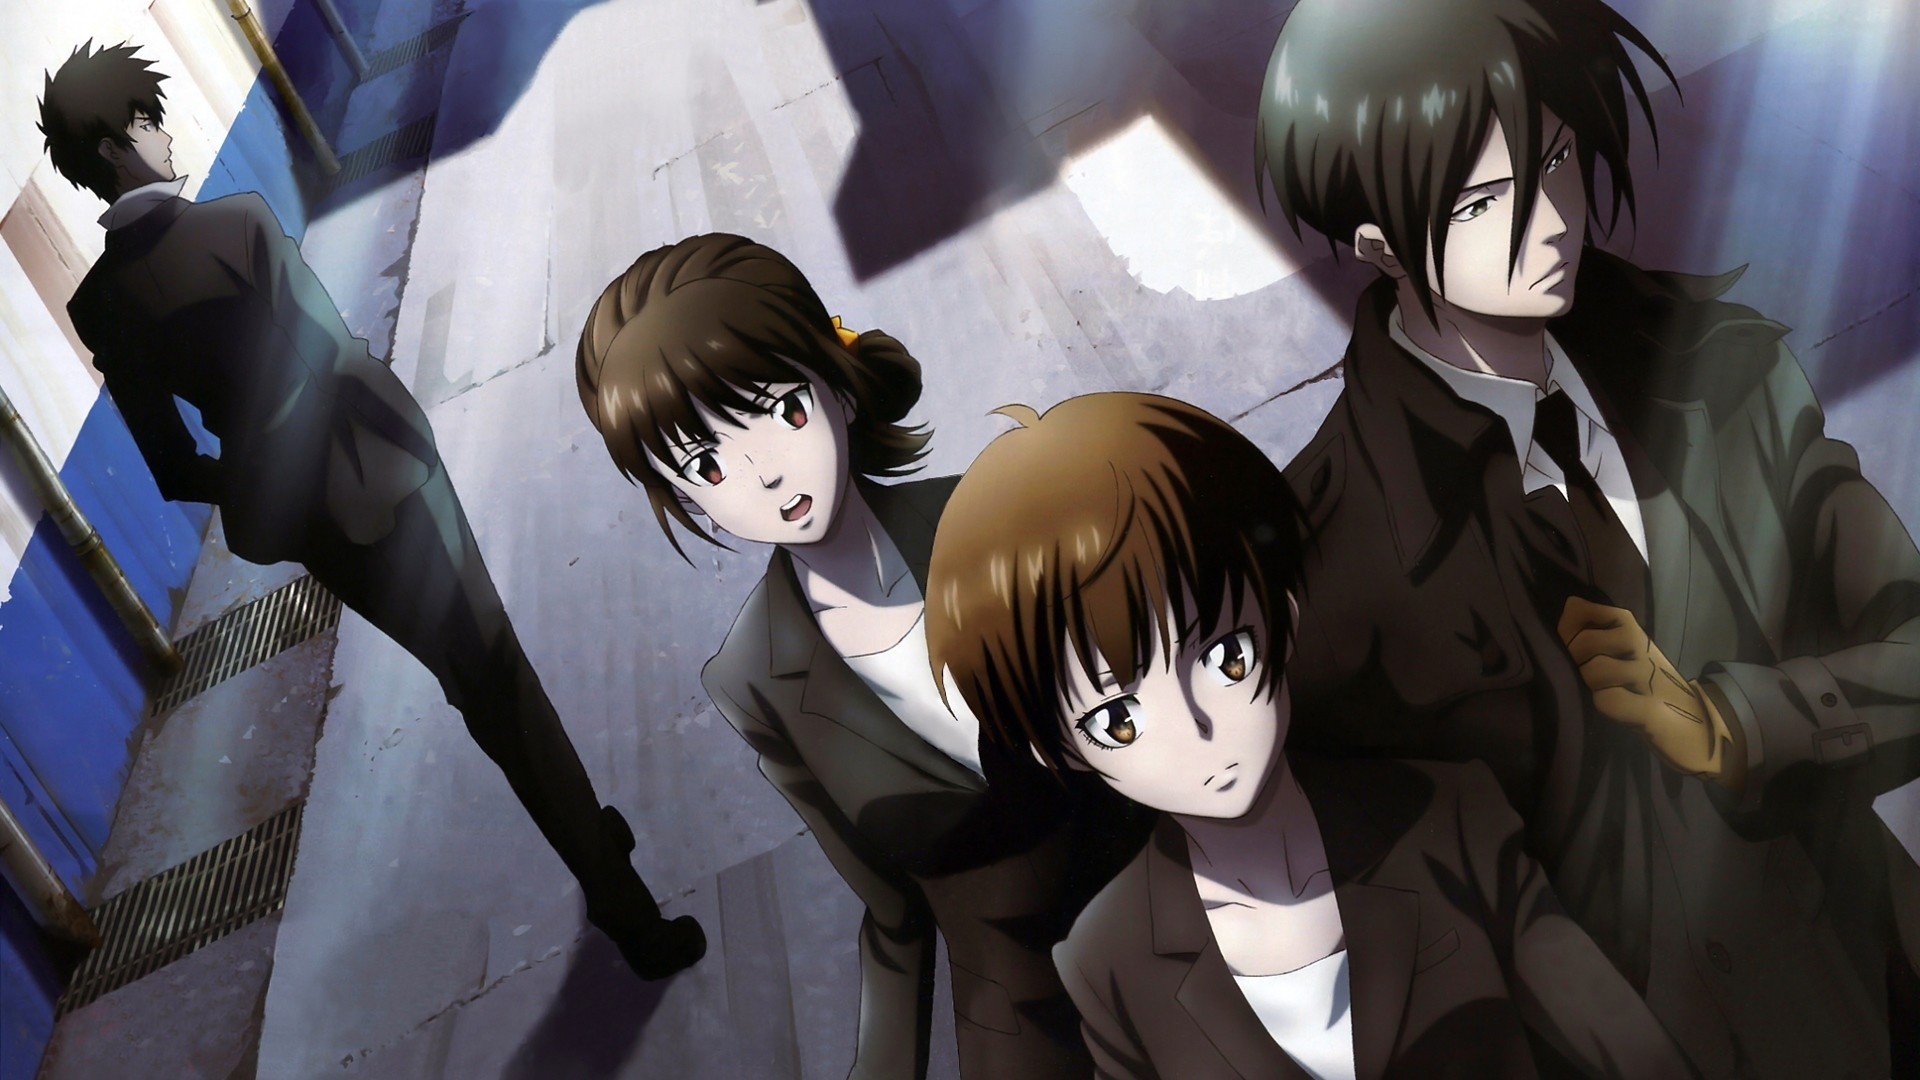 Psycho-Pass Wallpaper For PC